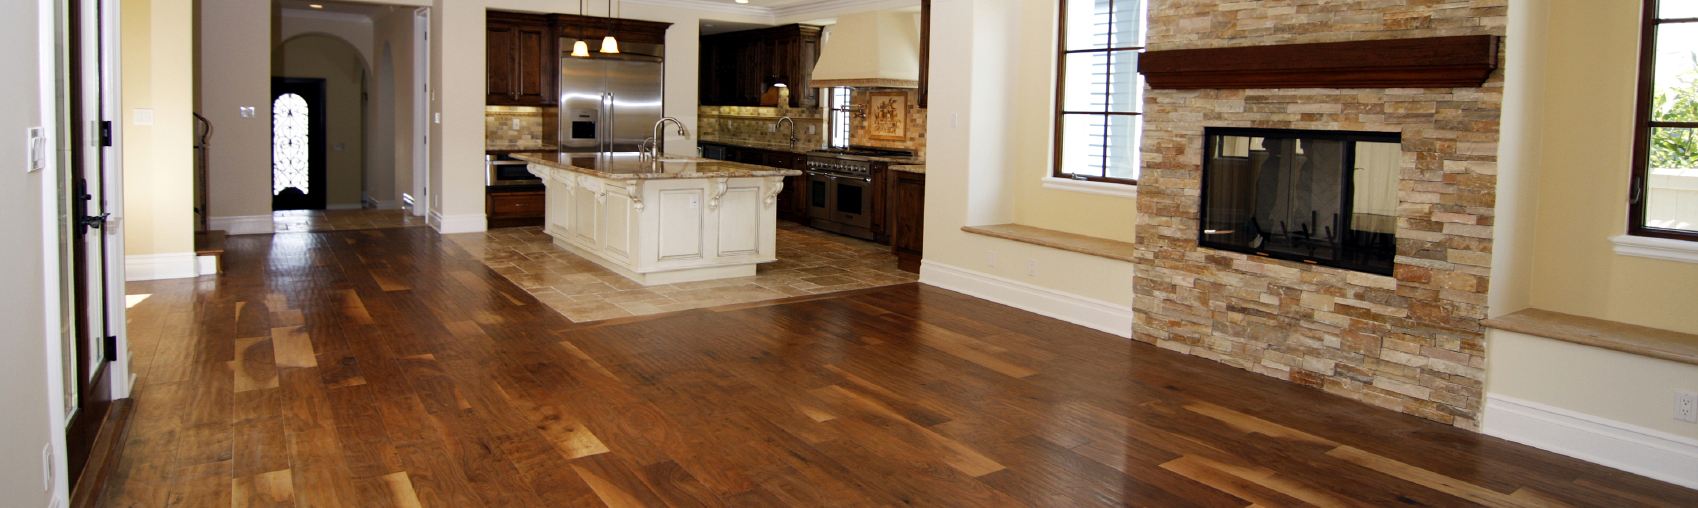 Hardwood Flooring Installation Services In Marietta Ga